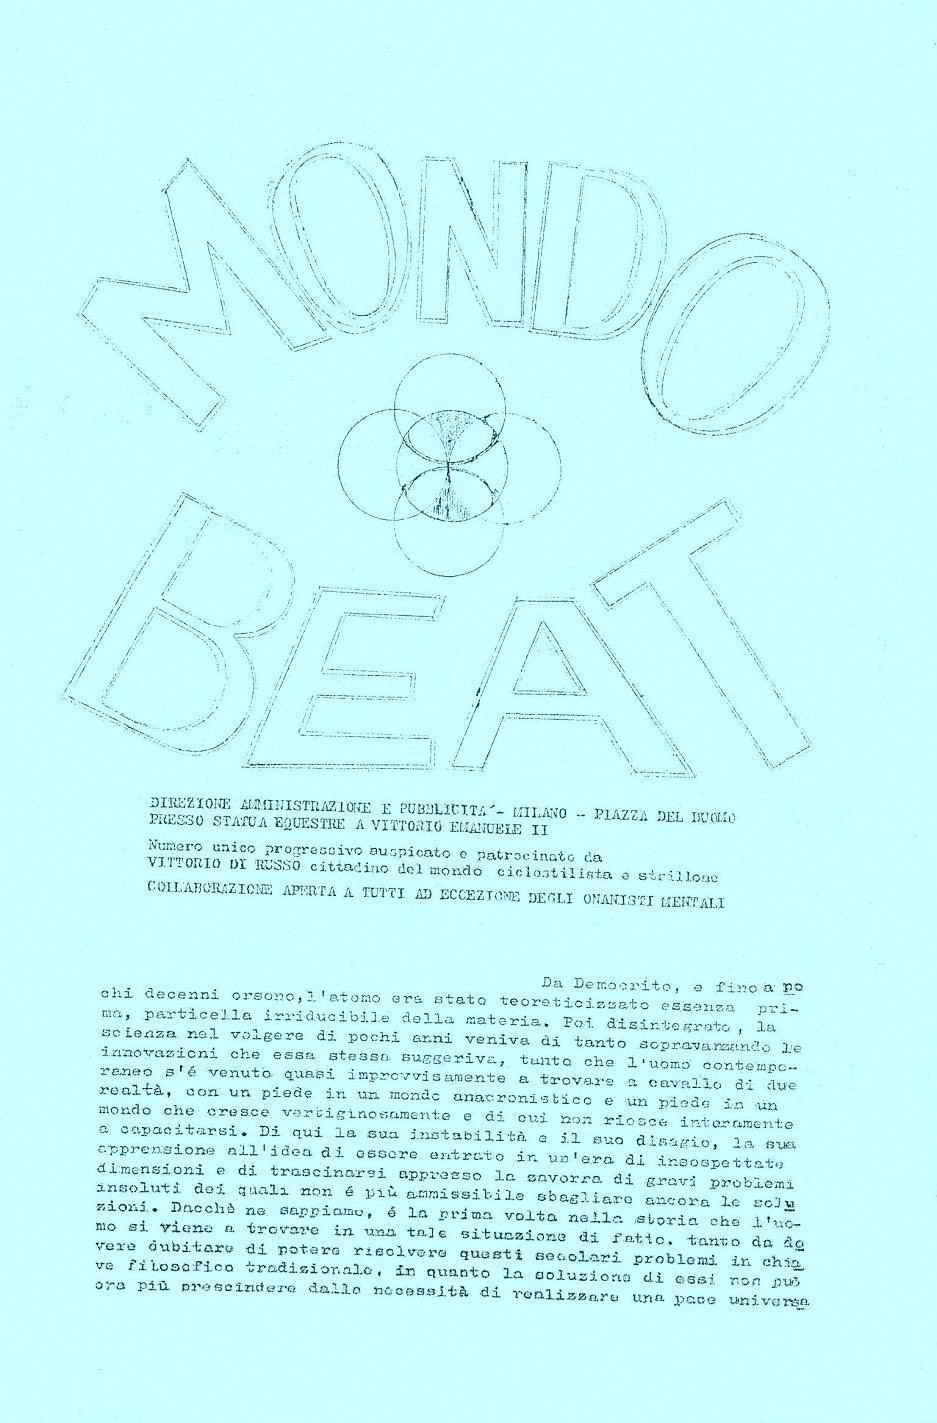 The first issue of Mondo Beat magazine - Edition 860 copies - Milan, November 15, 1966